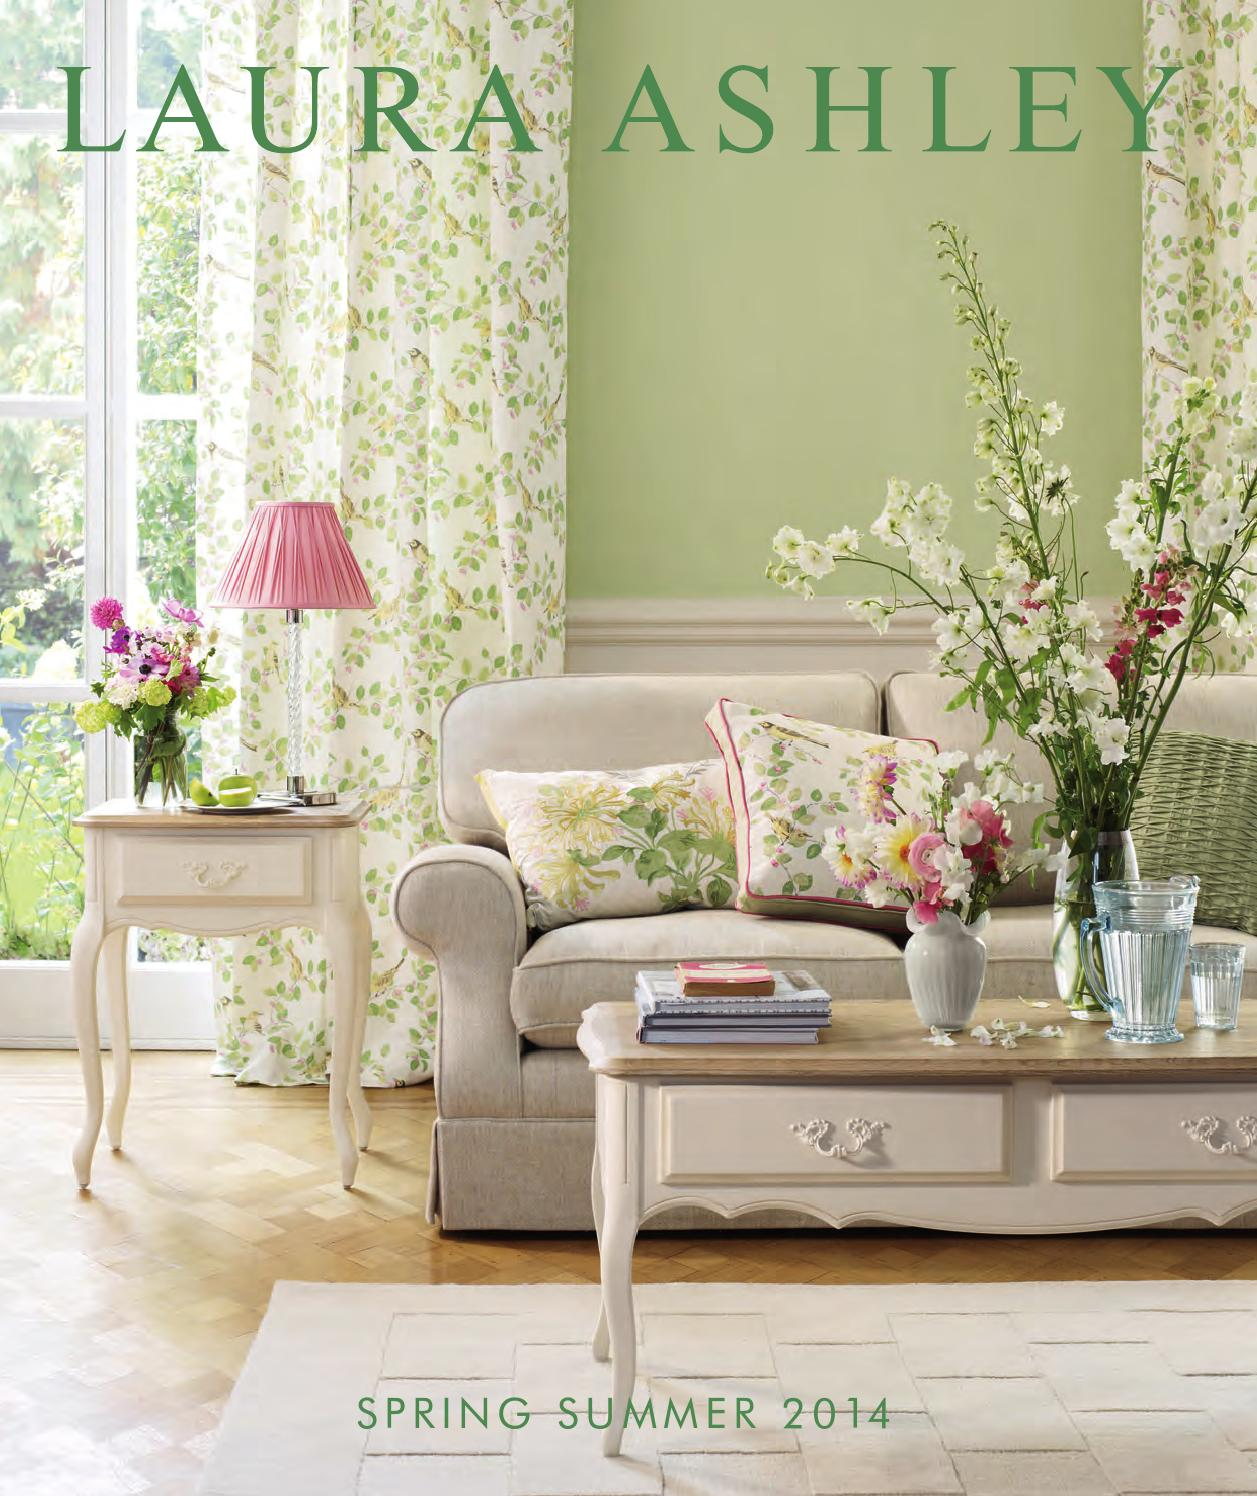 laura ashley home spring summer 2014 by laura ashley. Black Bedroom Furniture Sets. Home Design Ideas